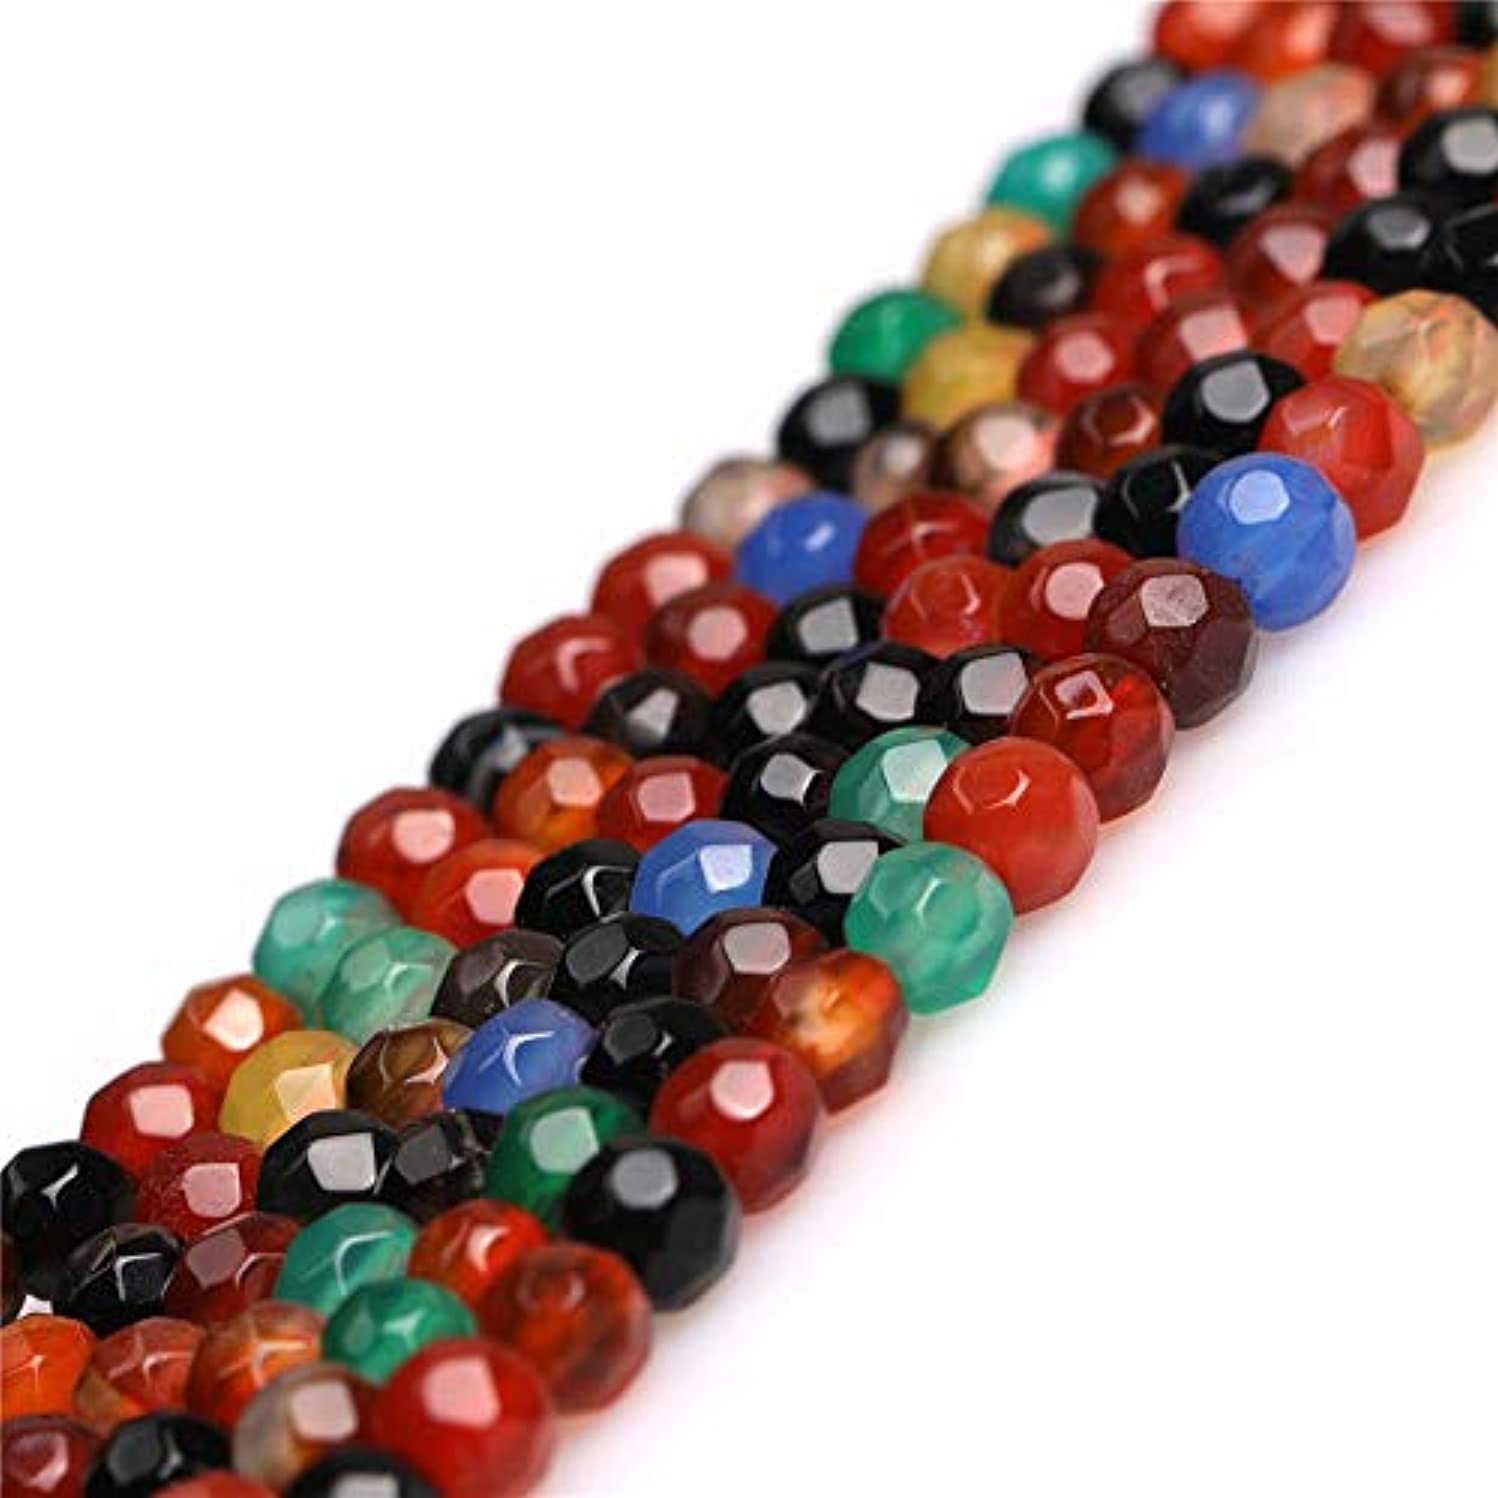 Round Faceted Mixed Color Agate Gemstone Loose Beads in Bulk Handmade DIY One Strand 15